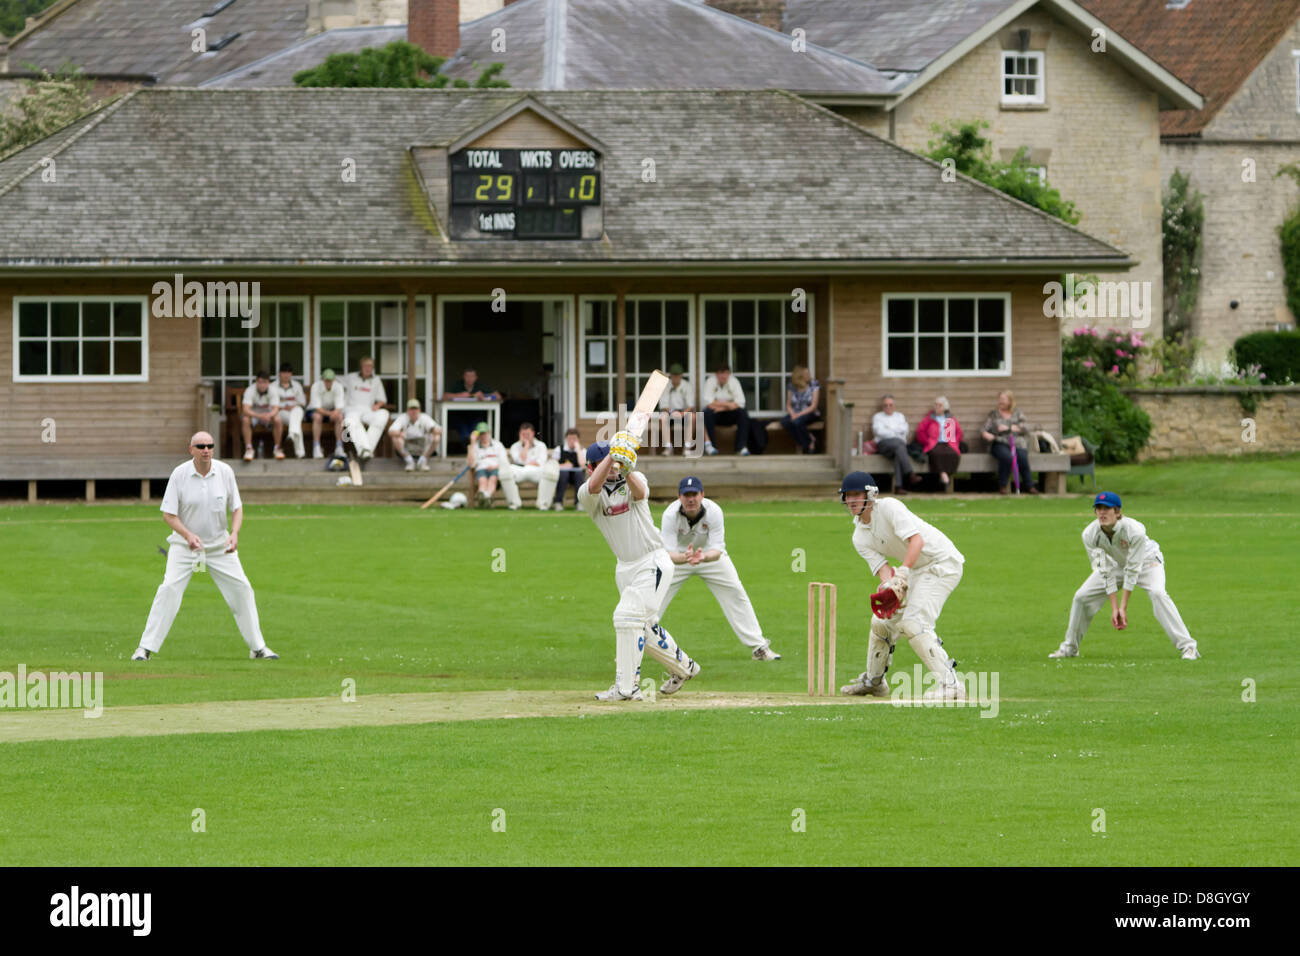 Hovingham Cricket match, north Yorkshire - Stock Image